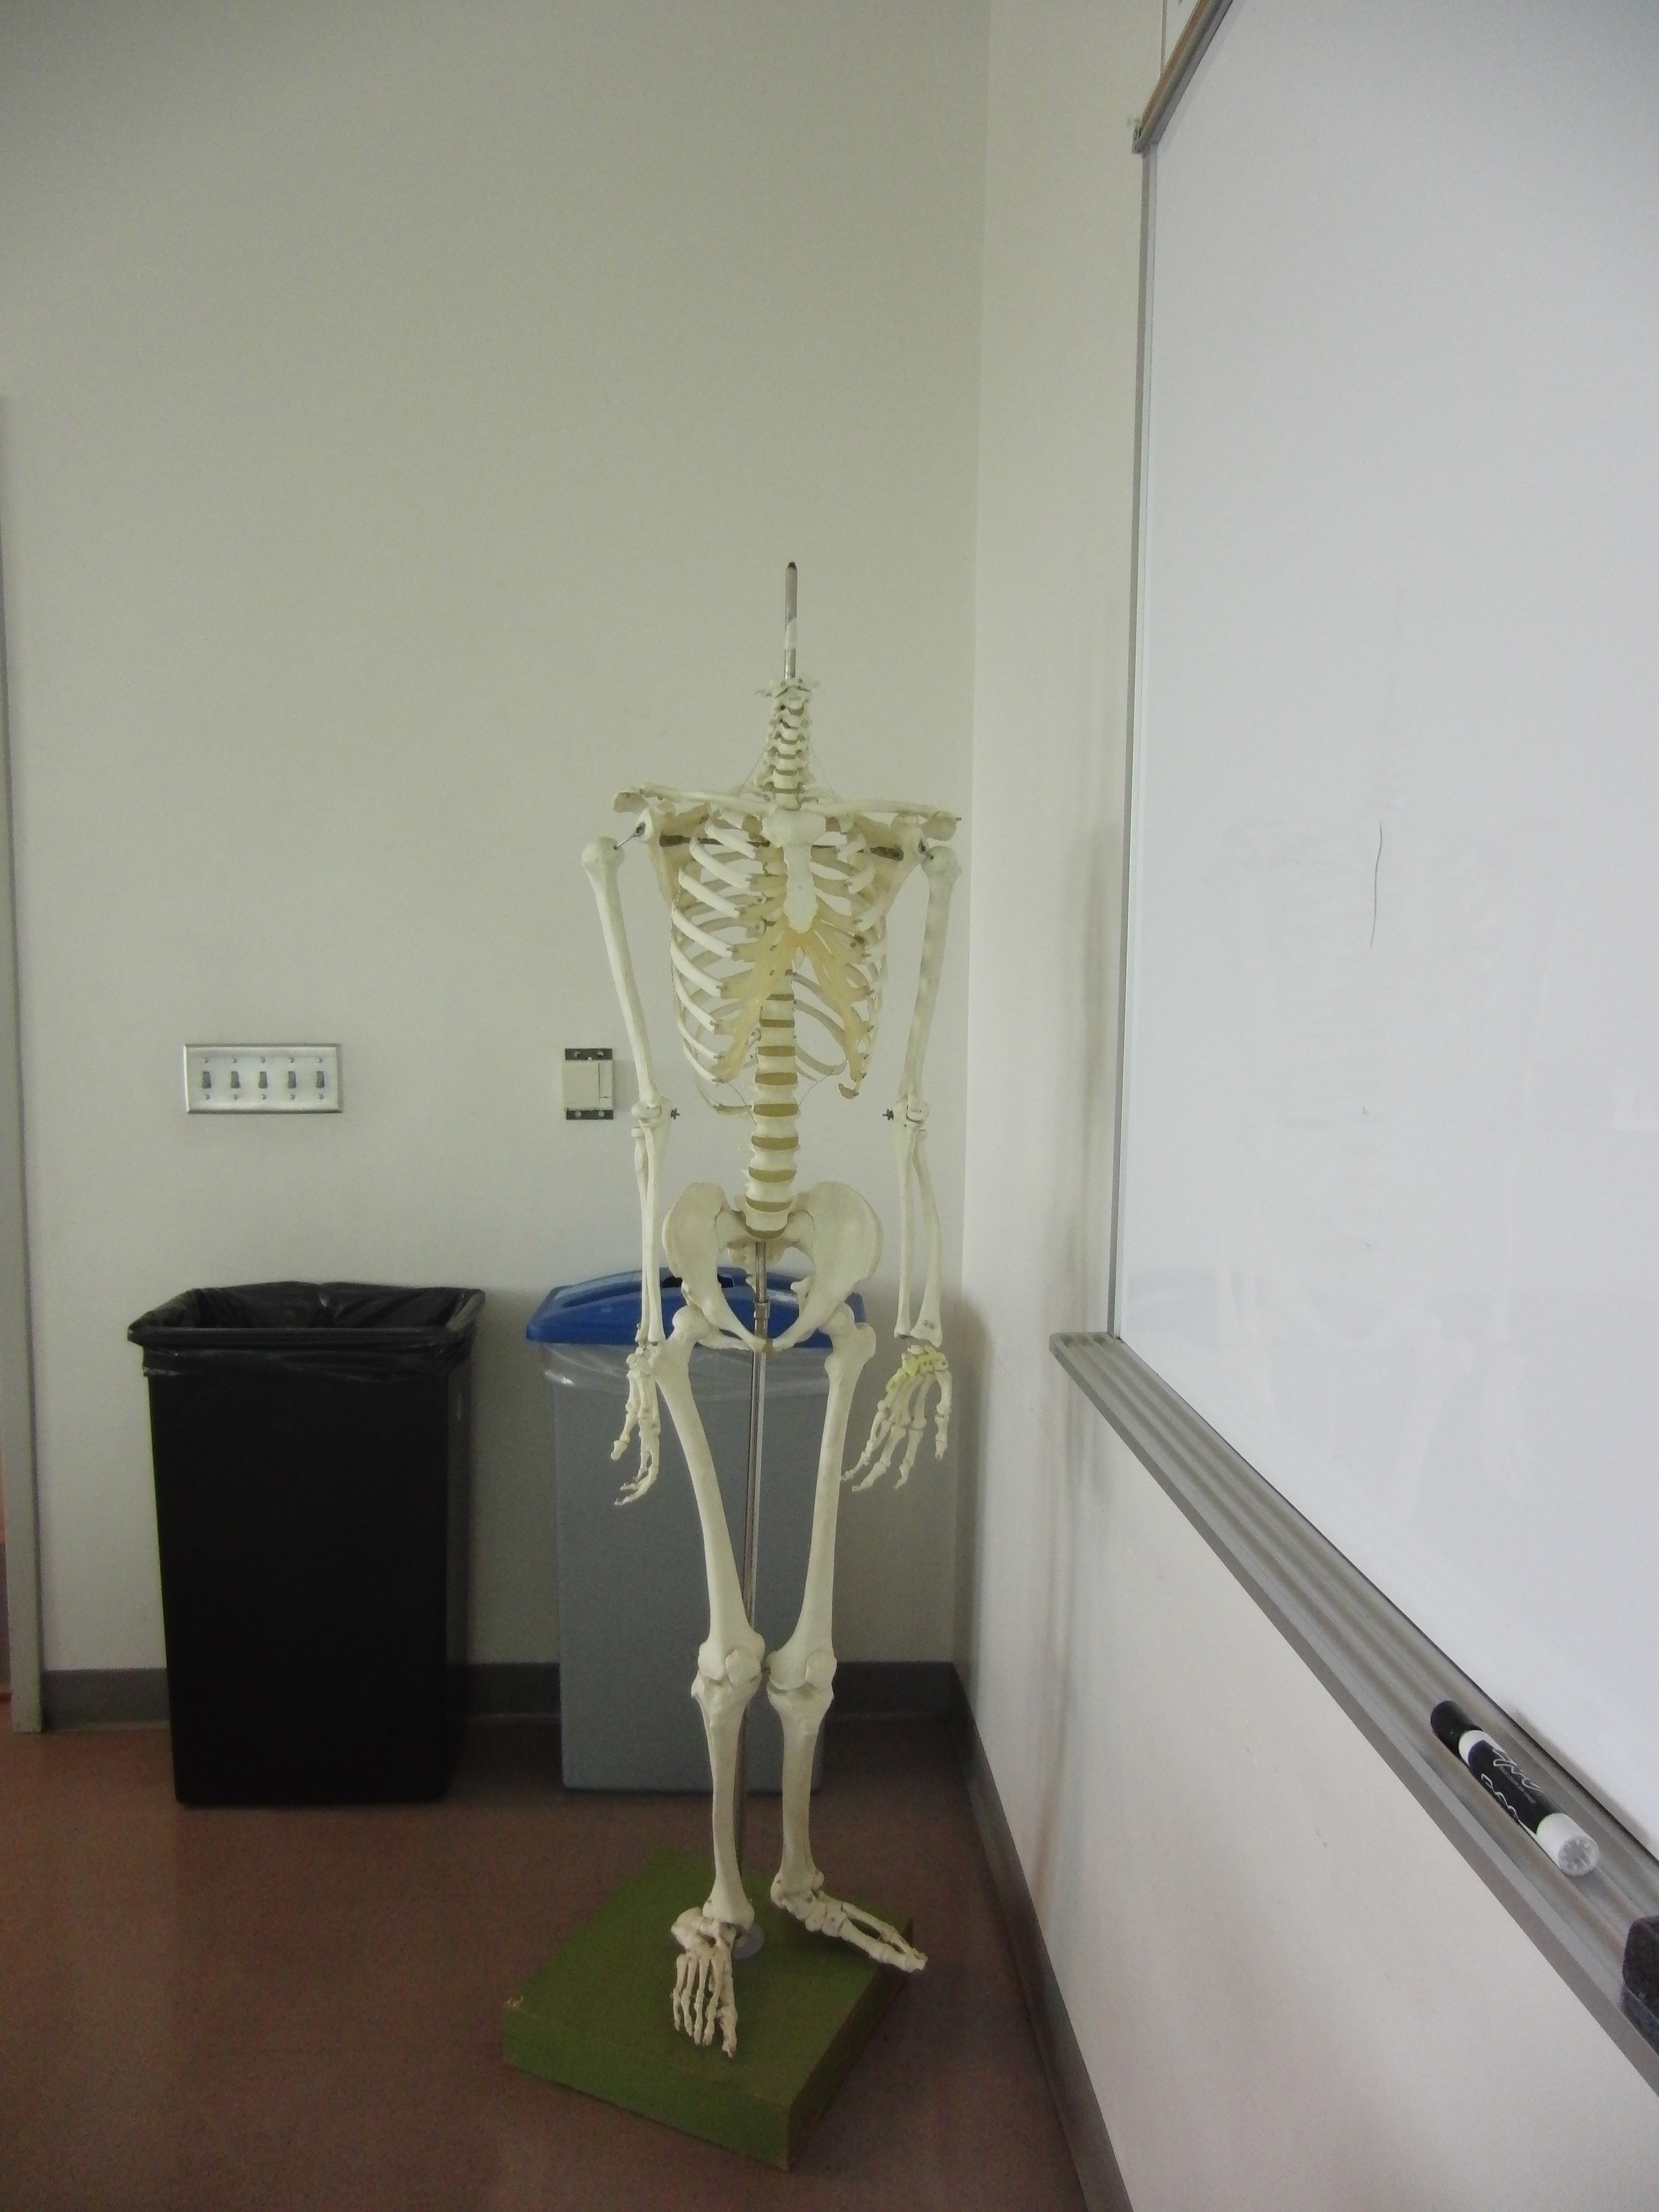 Photo of the skeleton in the room